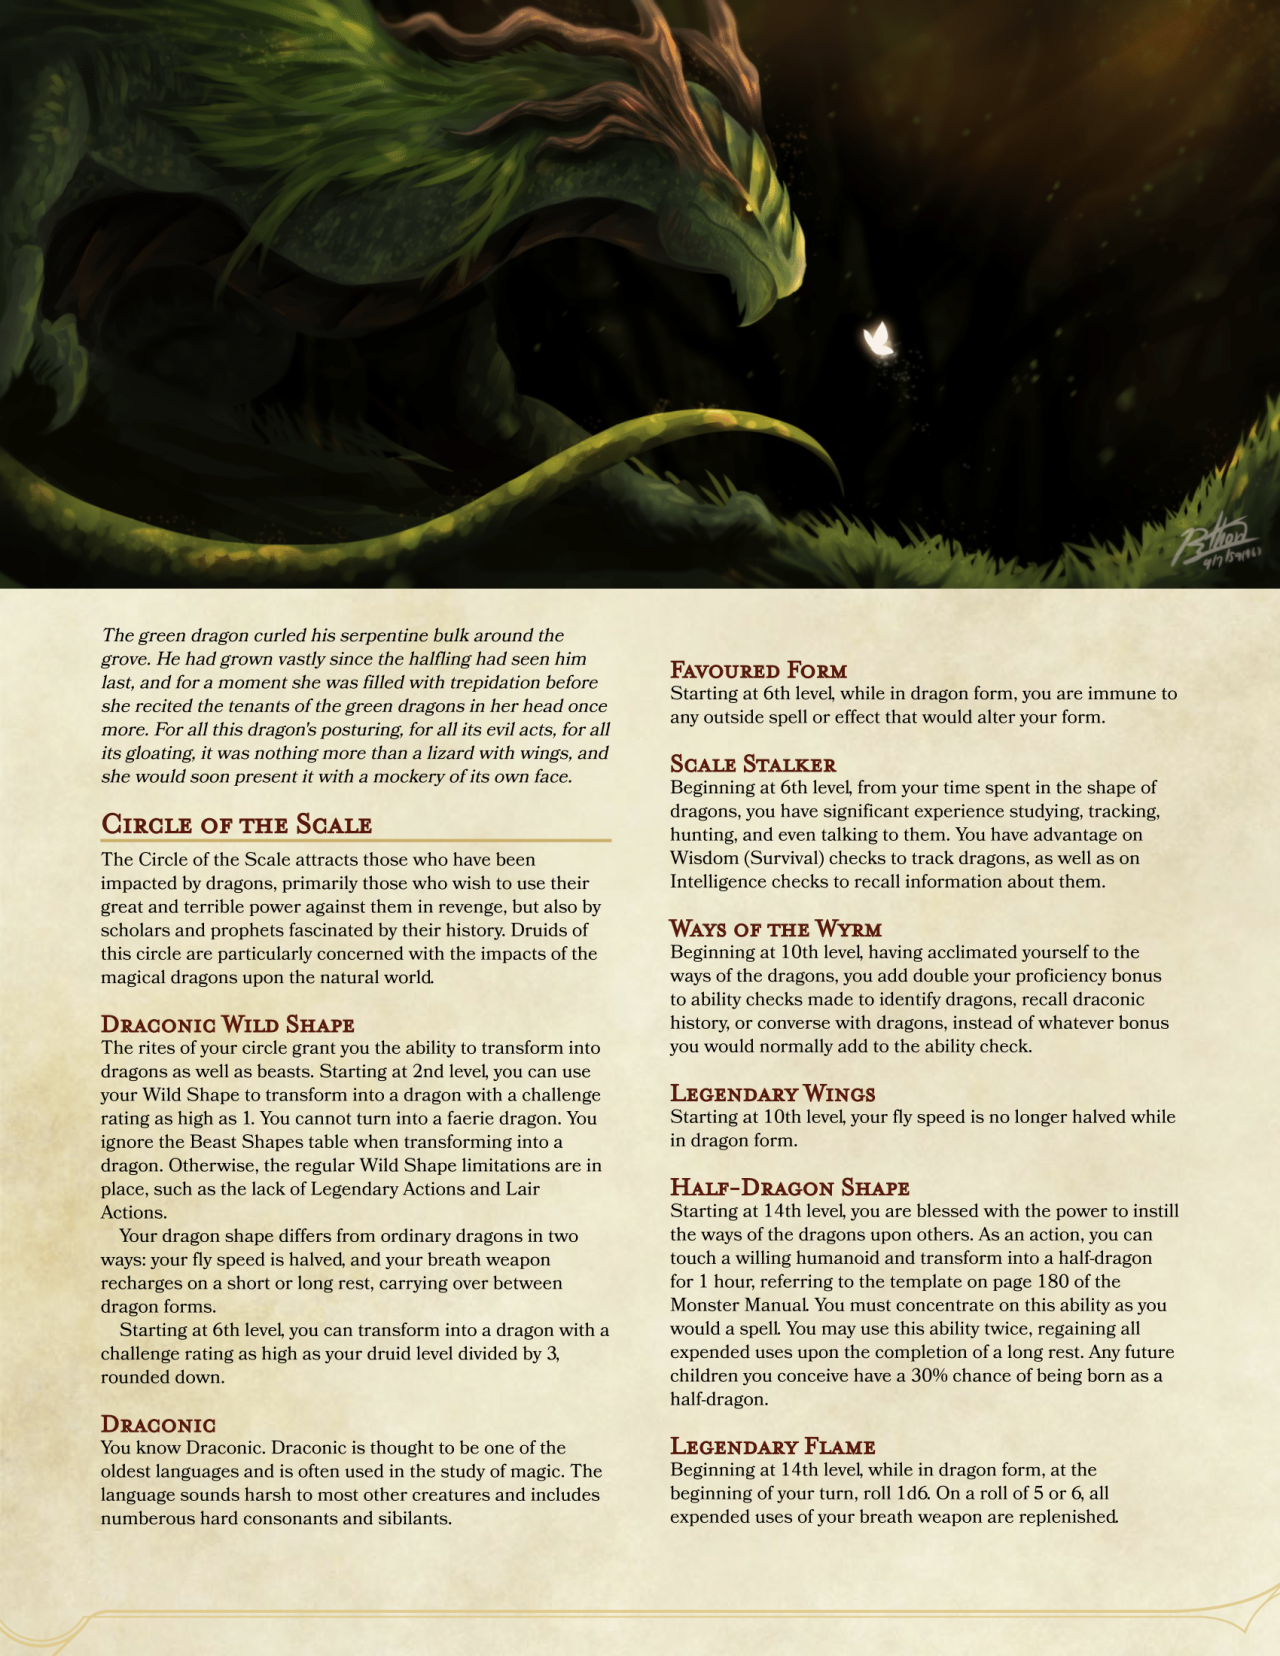 Circle of the Scale: DnD 5e Homebrew | Paracosm in 2019